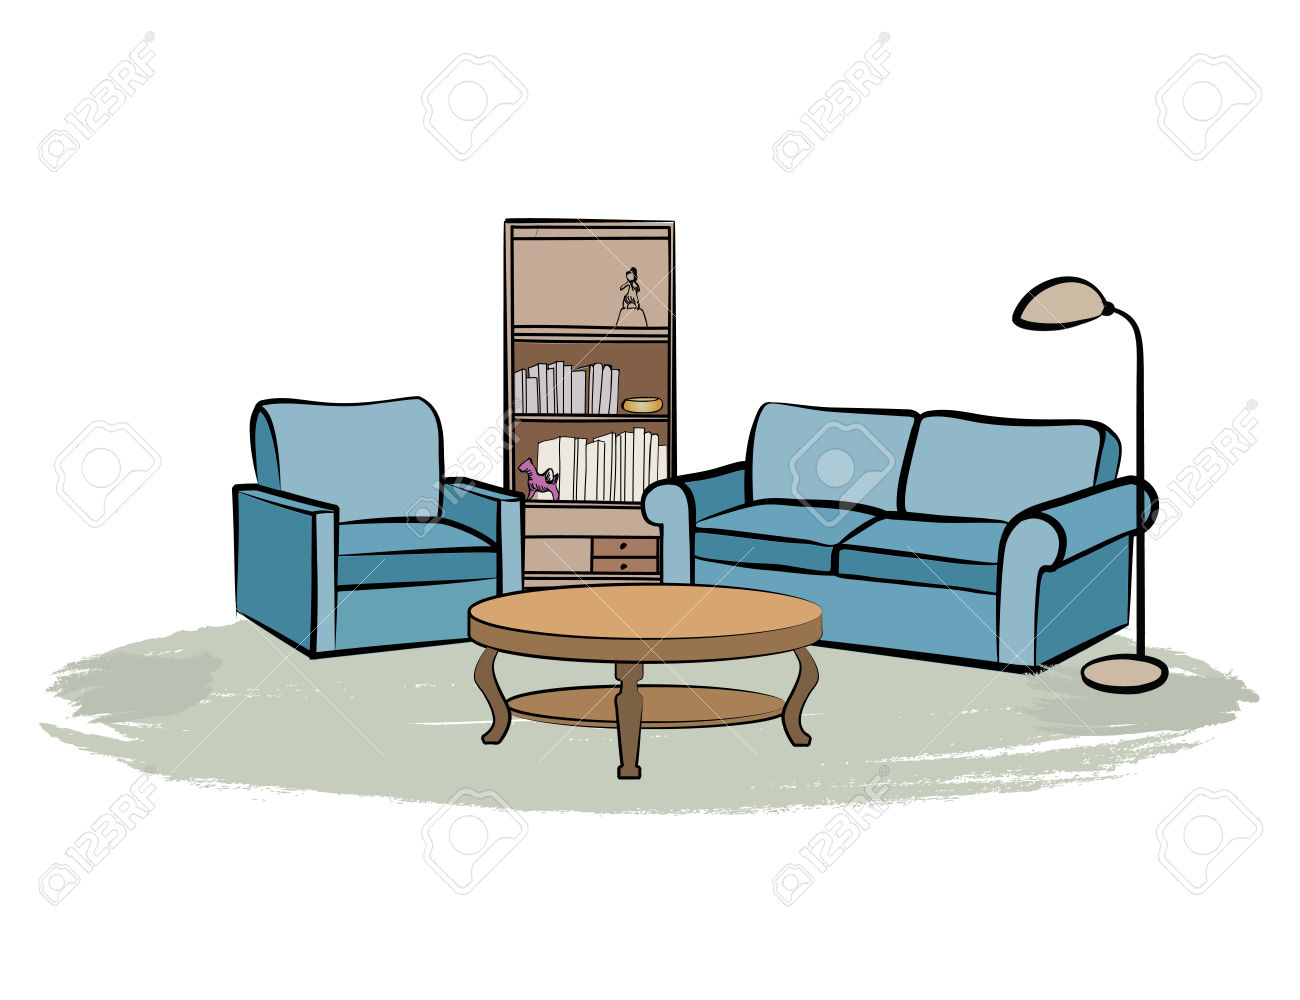 room clipart at getdrawings com free for personal use room clipart rh getdrawings com living room background clipart living room background clipart